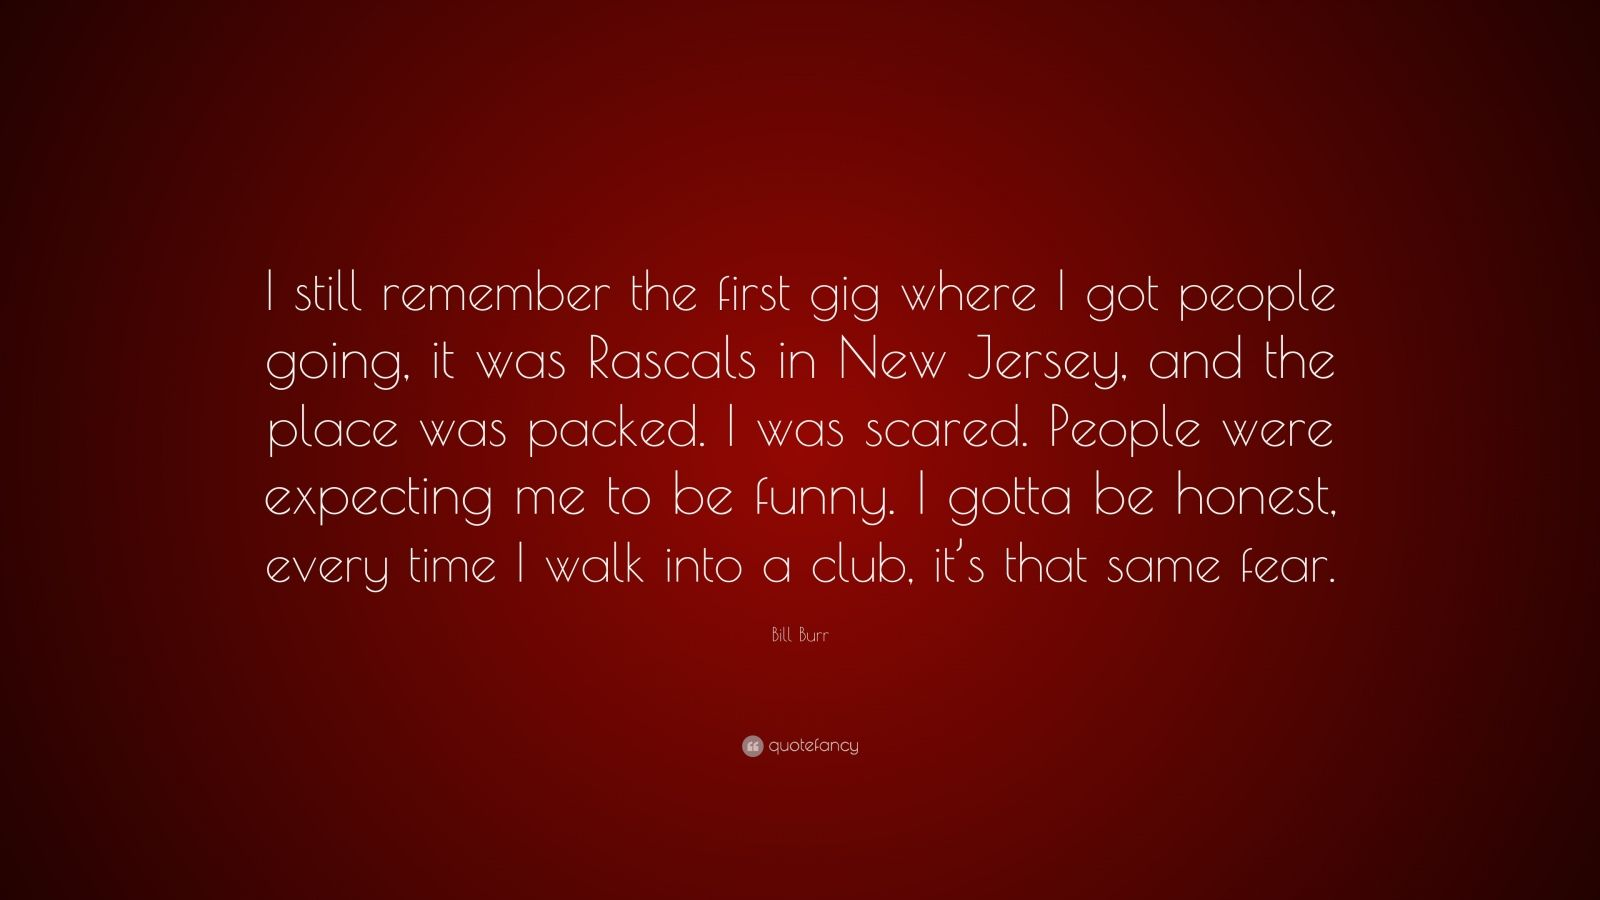 """Bill Burr Quote: """"I still remember the first gig where I got people going, it was Rascals in New Jersey, and the place was packed. I was scared. People were expecting me to be funny. I gotta be honest, every time I walk into a club, it's that same fear."""""""